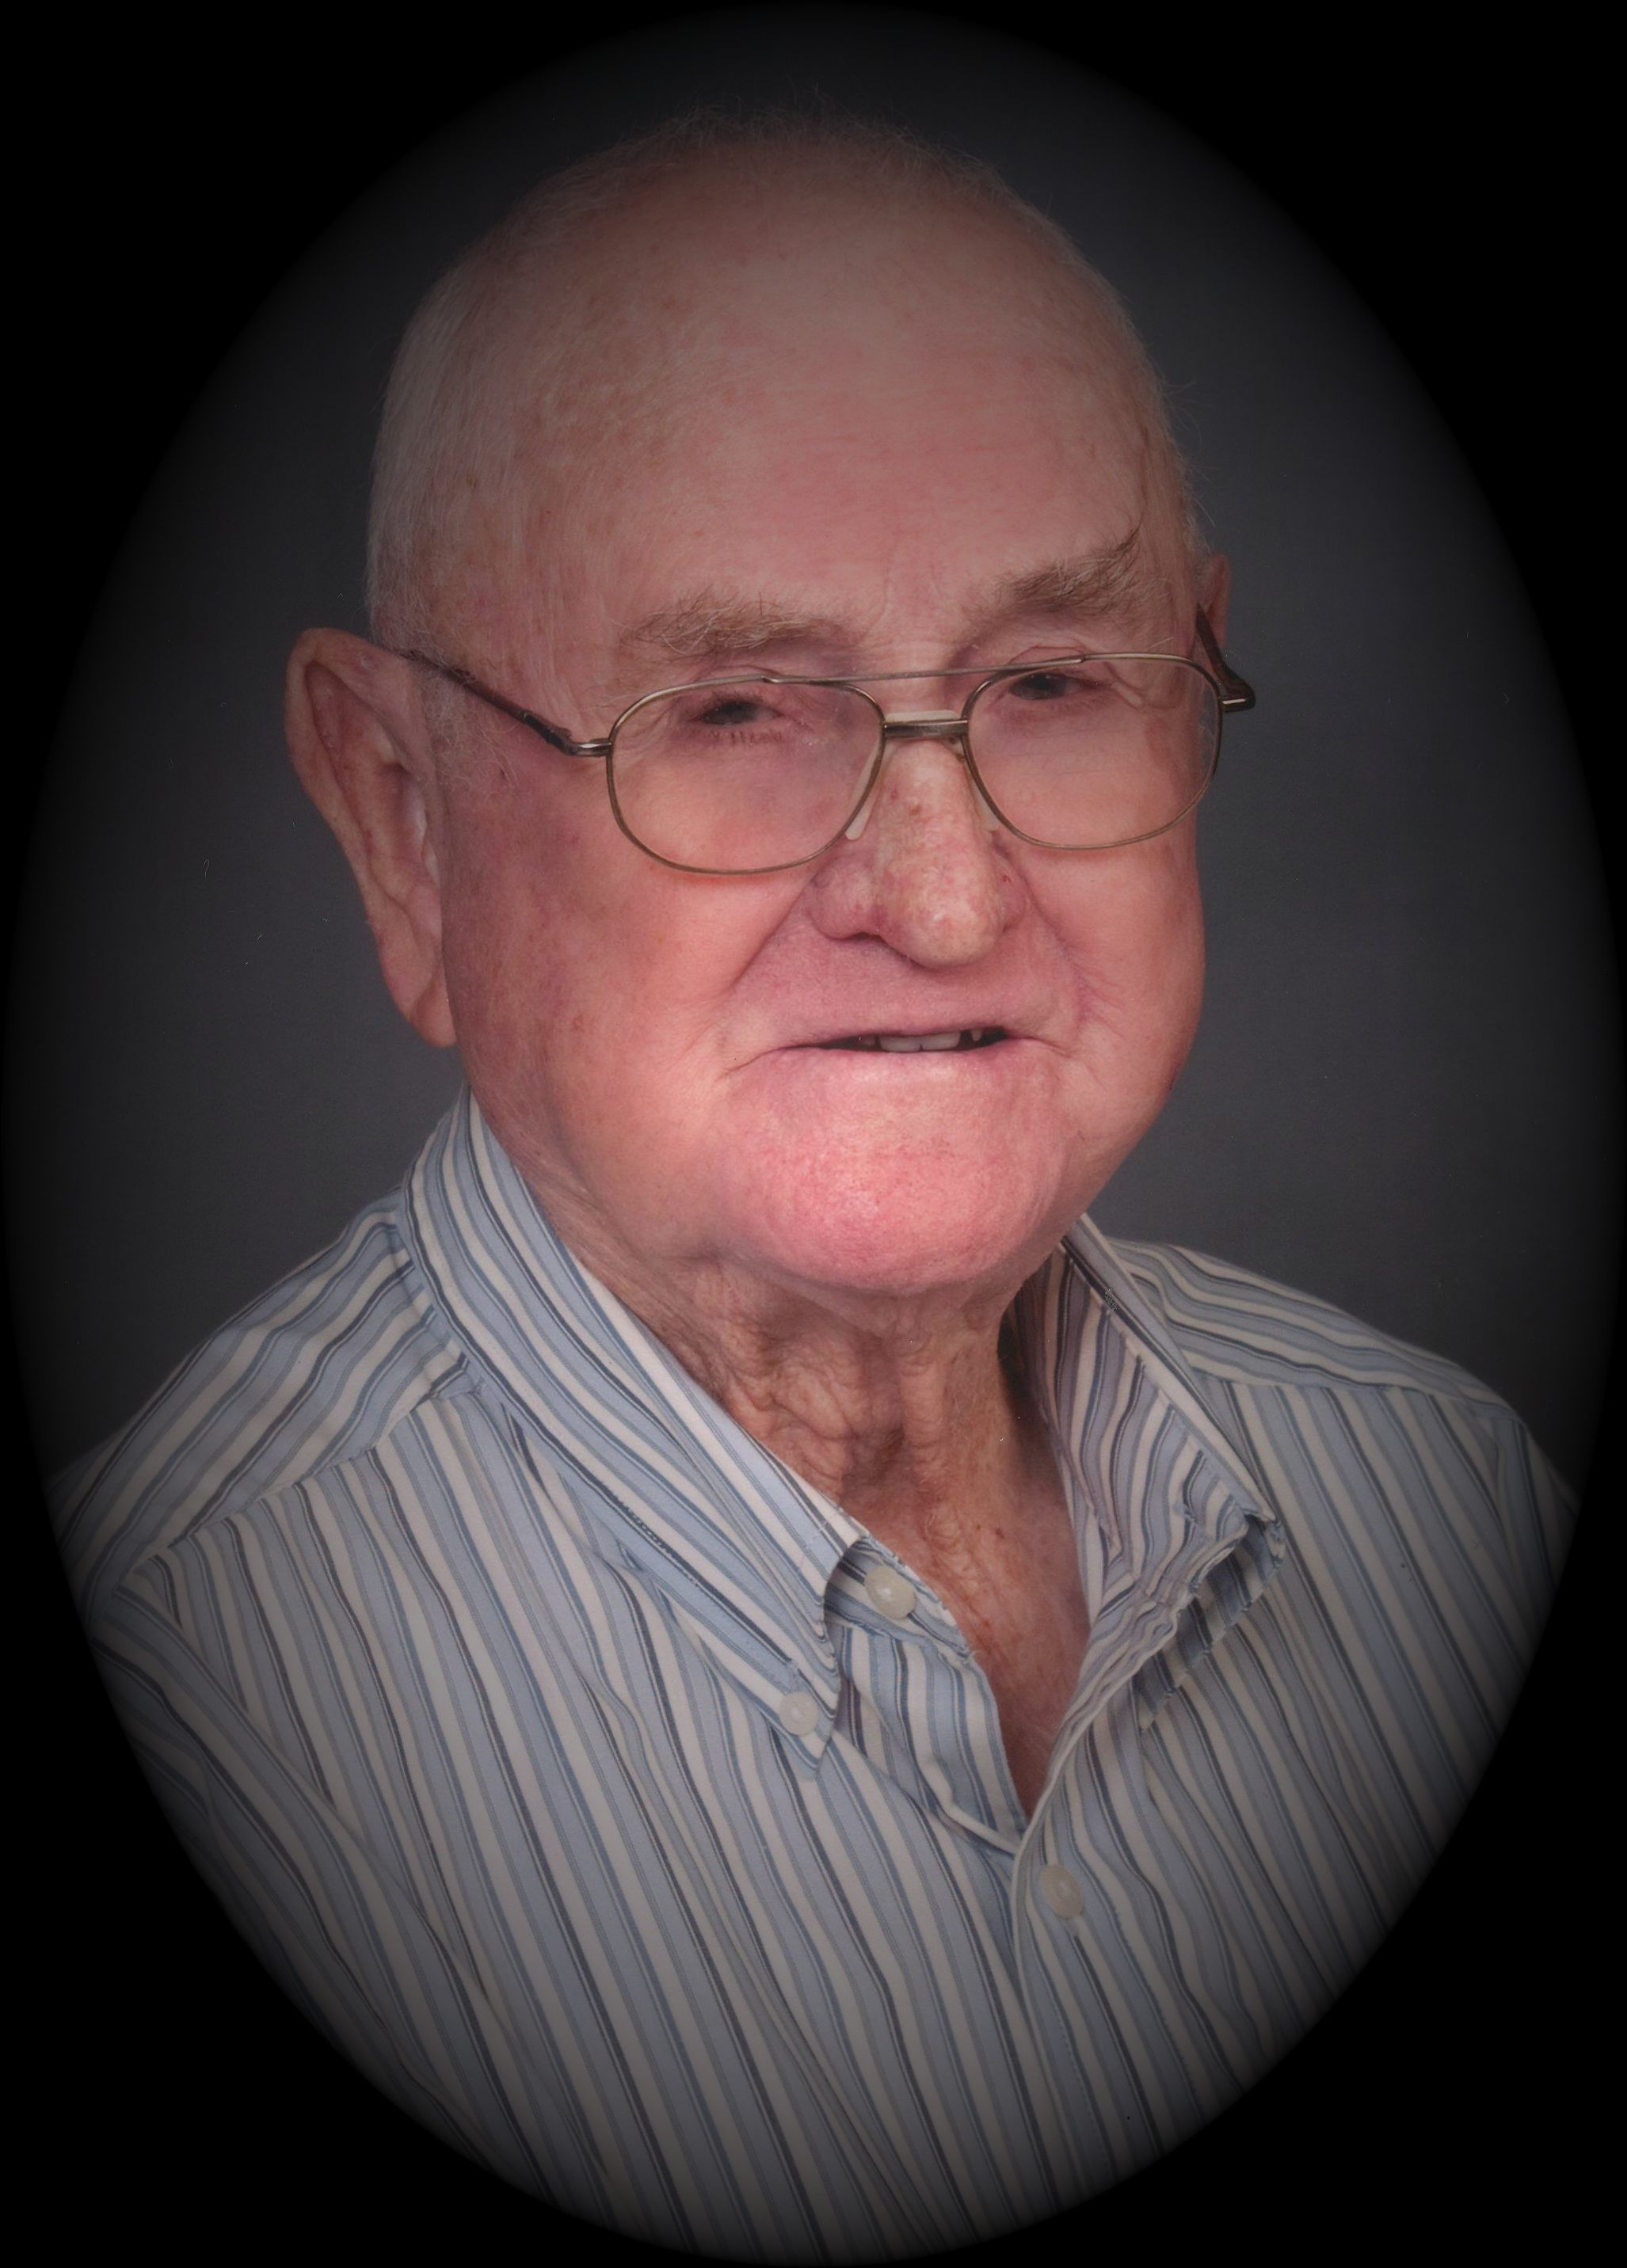 Obituary image of Leamon Rochell Cook